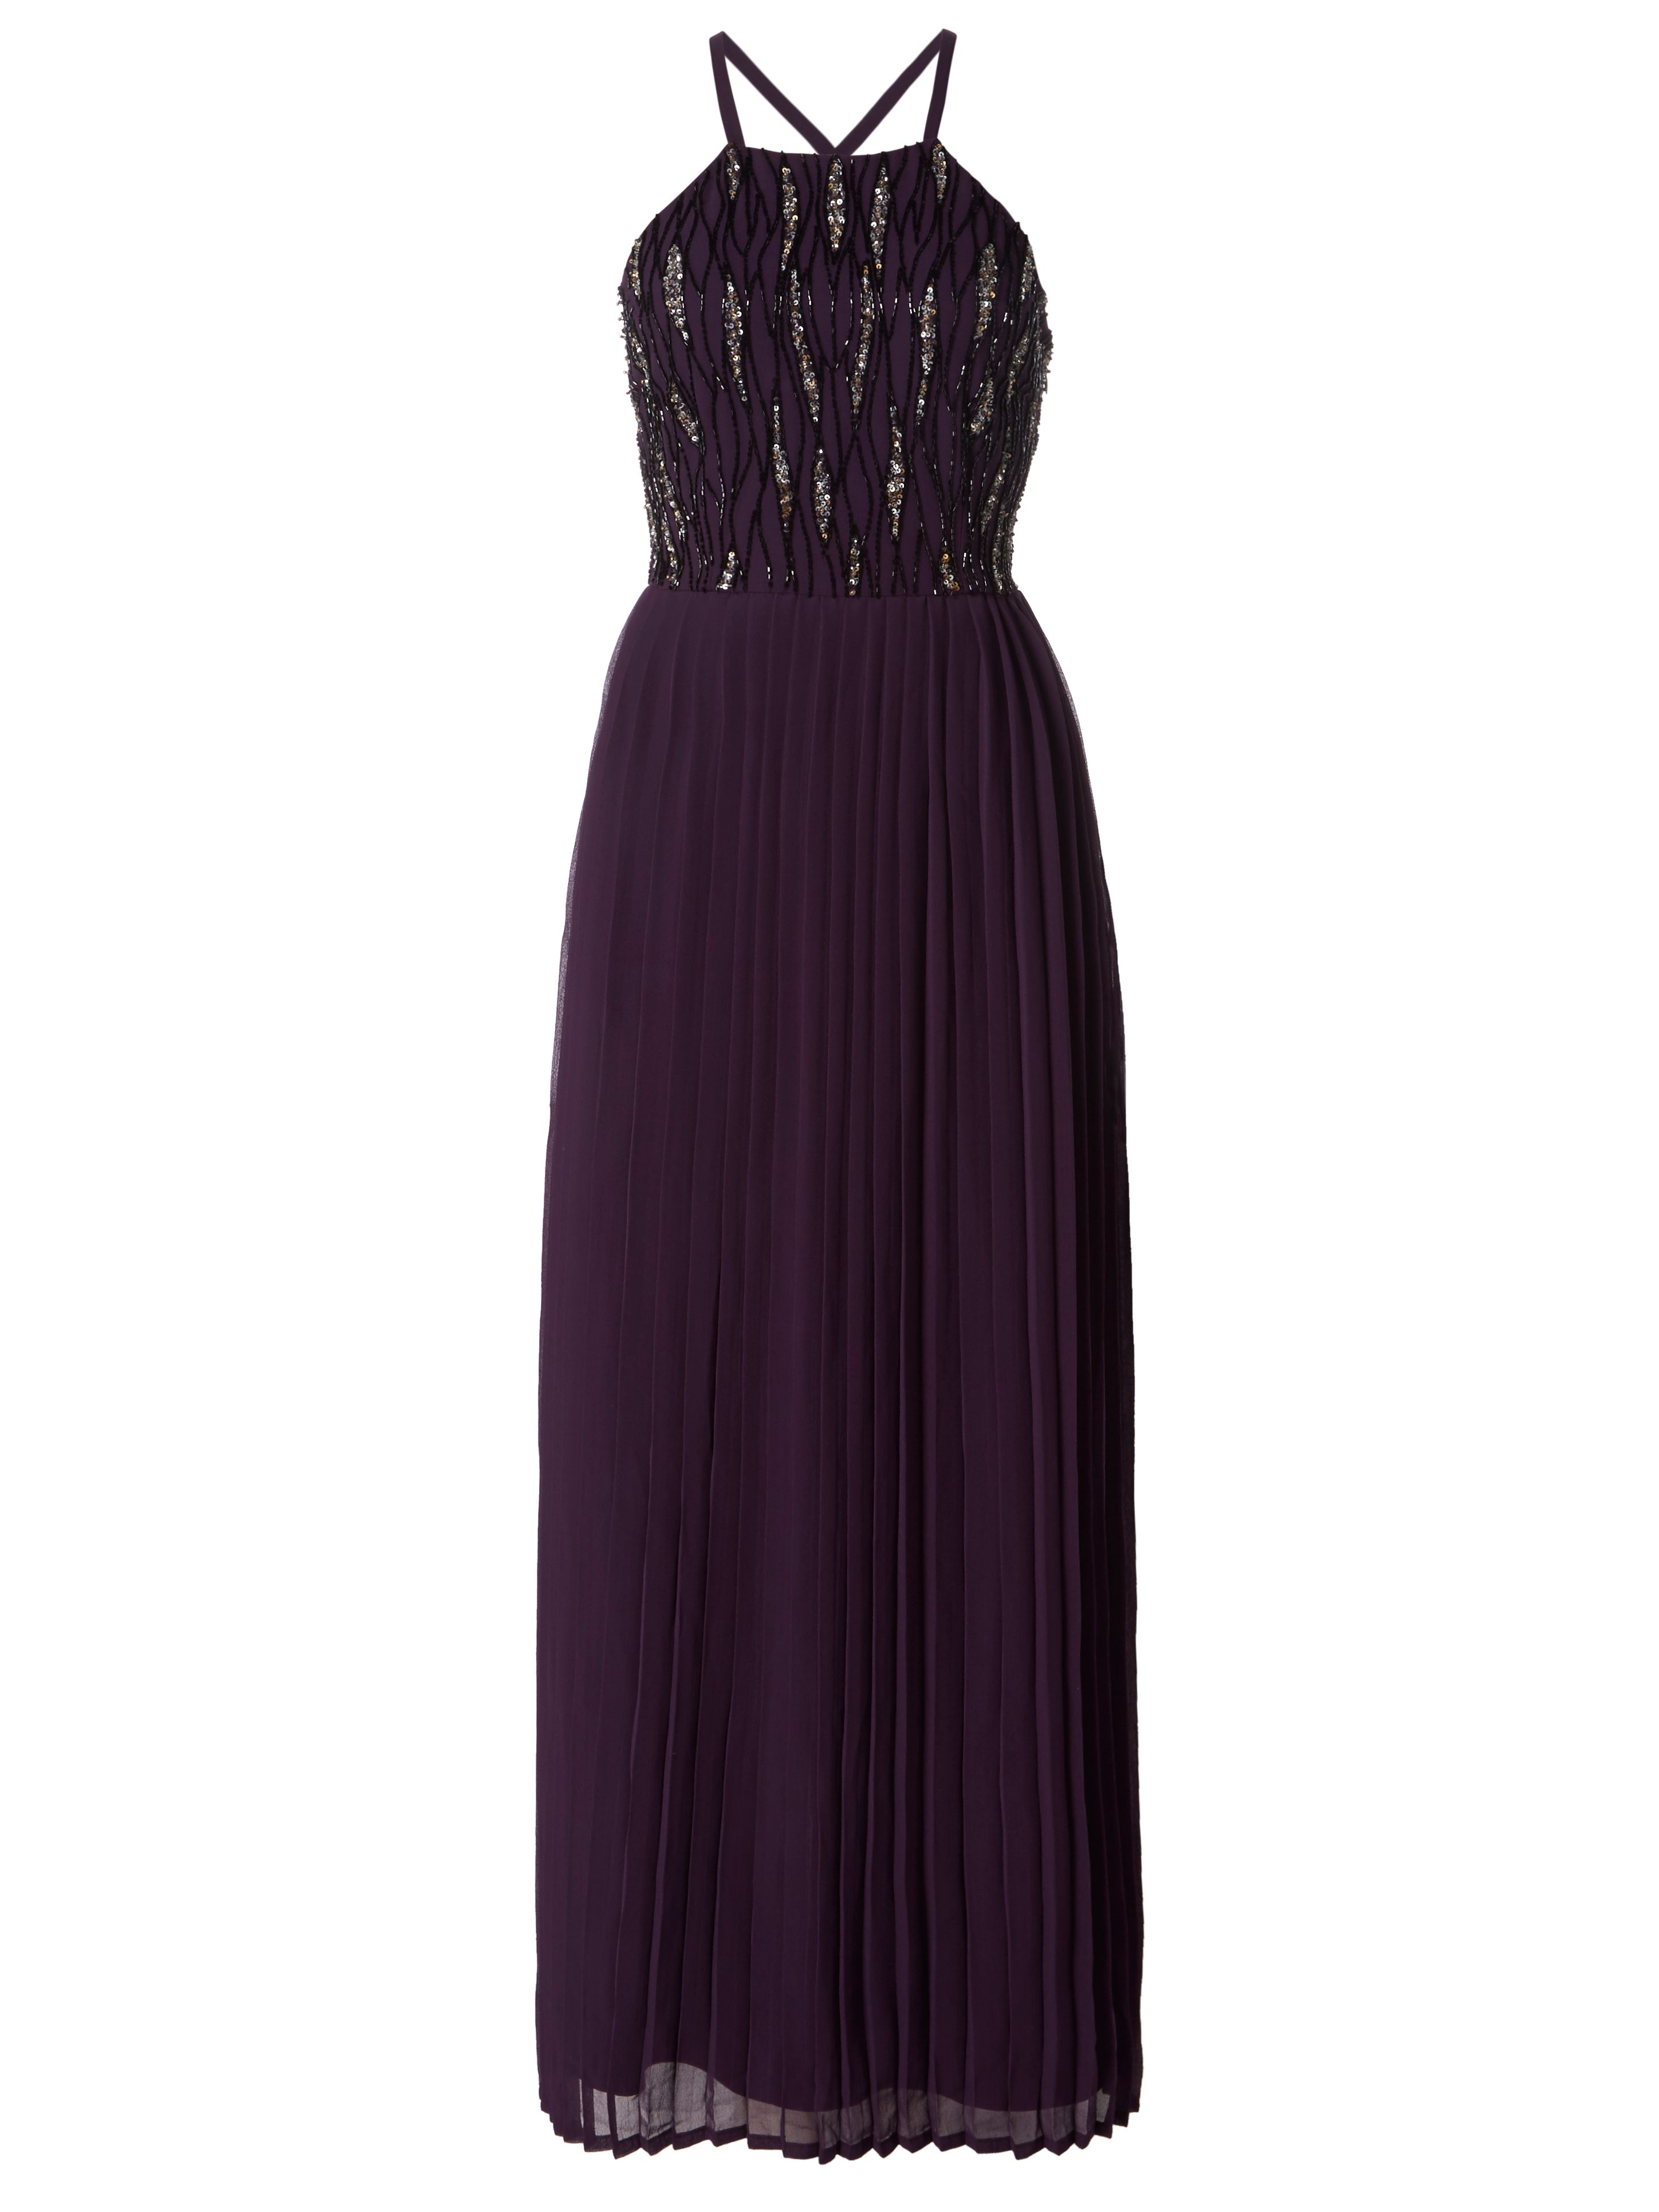 RAISHMA Pleated Midi Dress, Purple